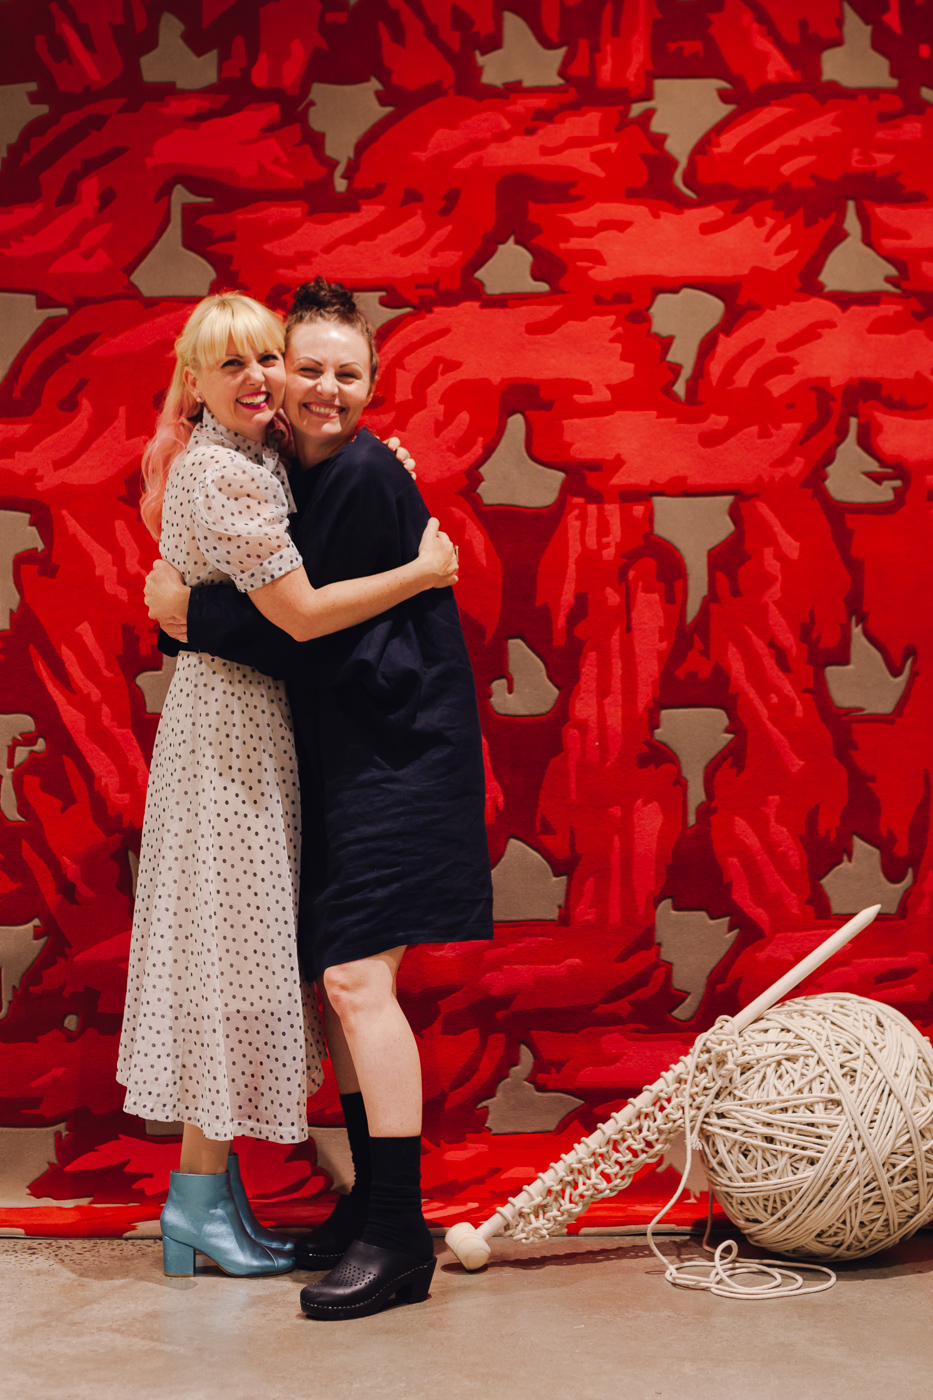 With über stylist Tamar Maynes | NEW AGAIN by Petrina Turner Design for Designer Rugs | The launch event